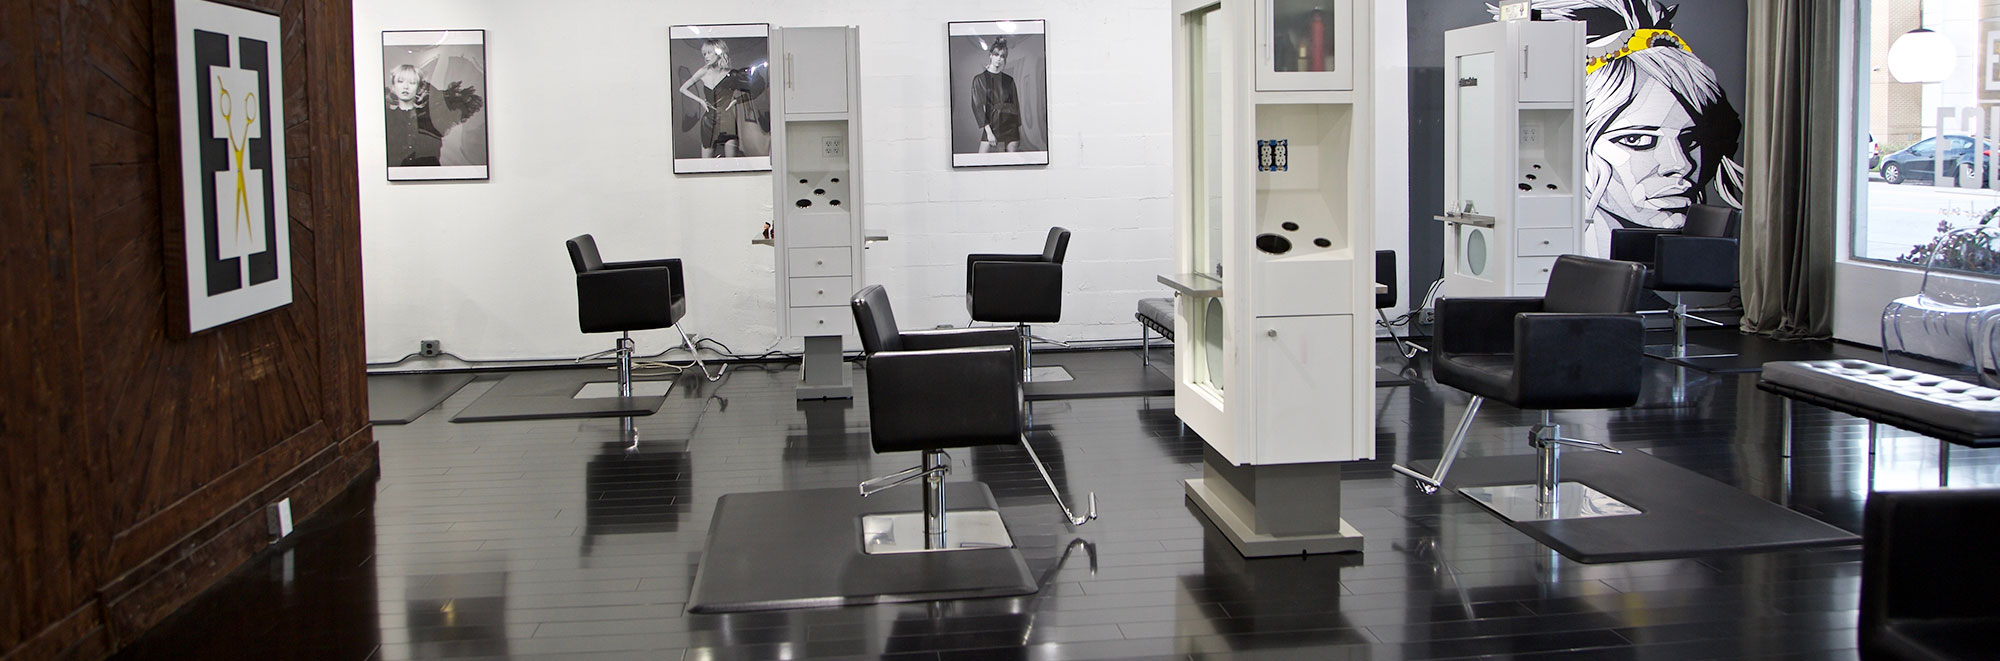 Educe Salon Services | Orlandos Best Hair Salon